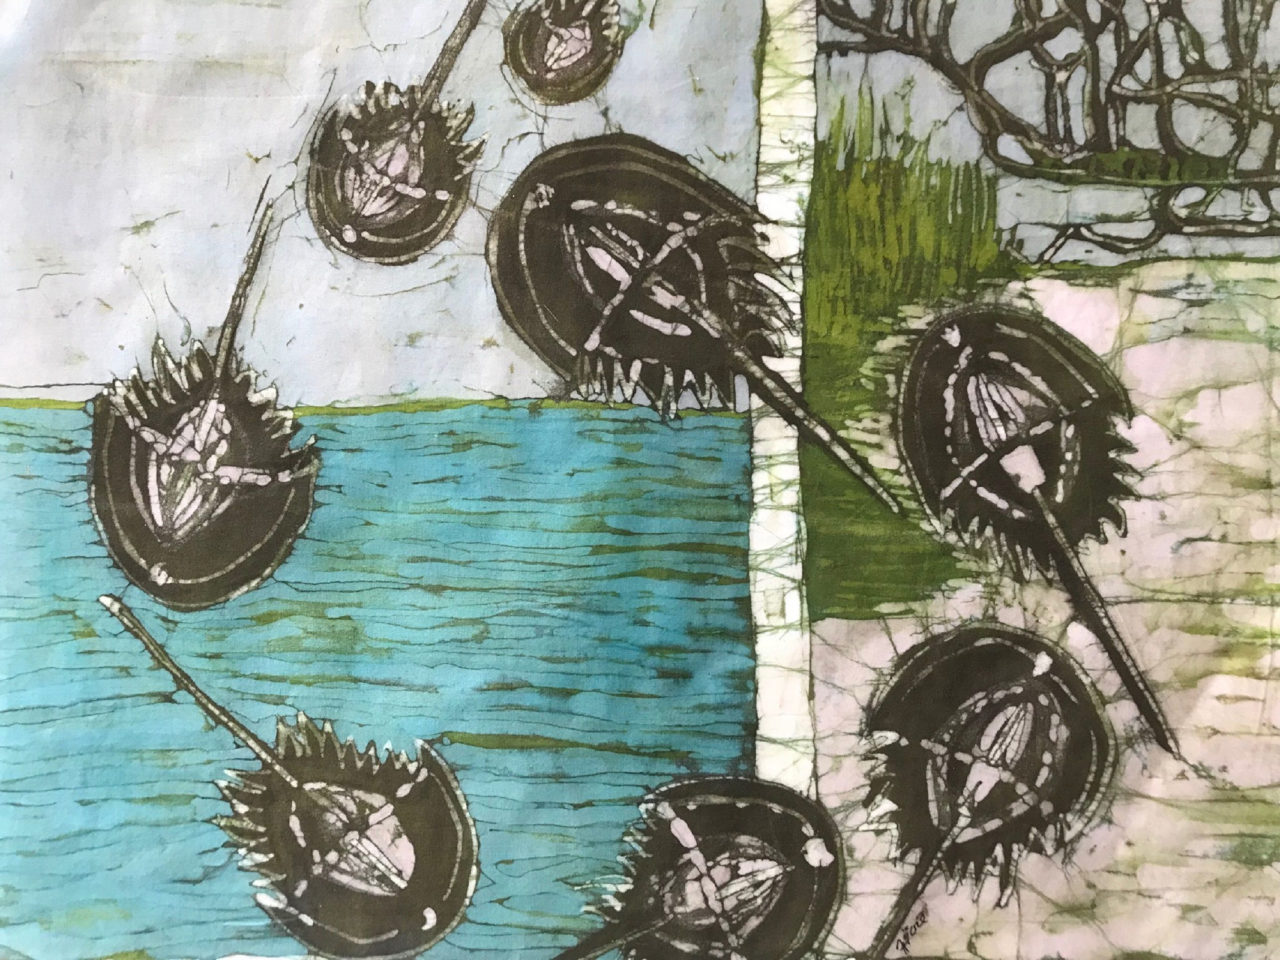 Return to the Sea - Lenore Fiore-Mills